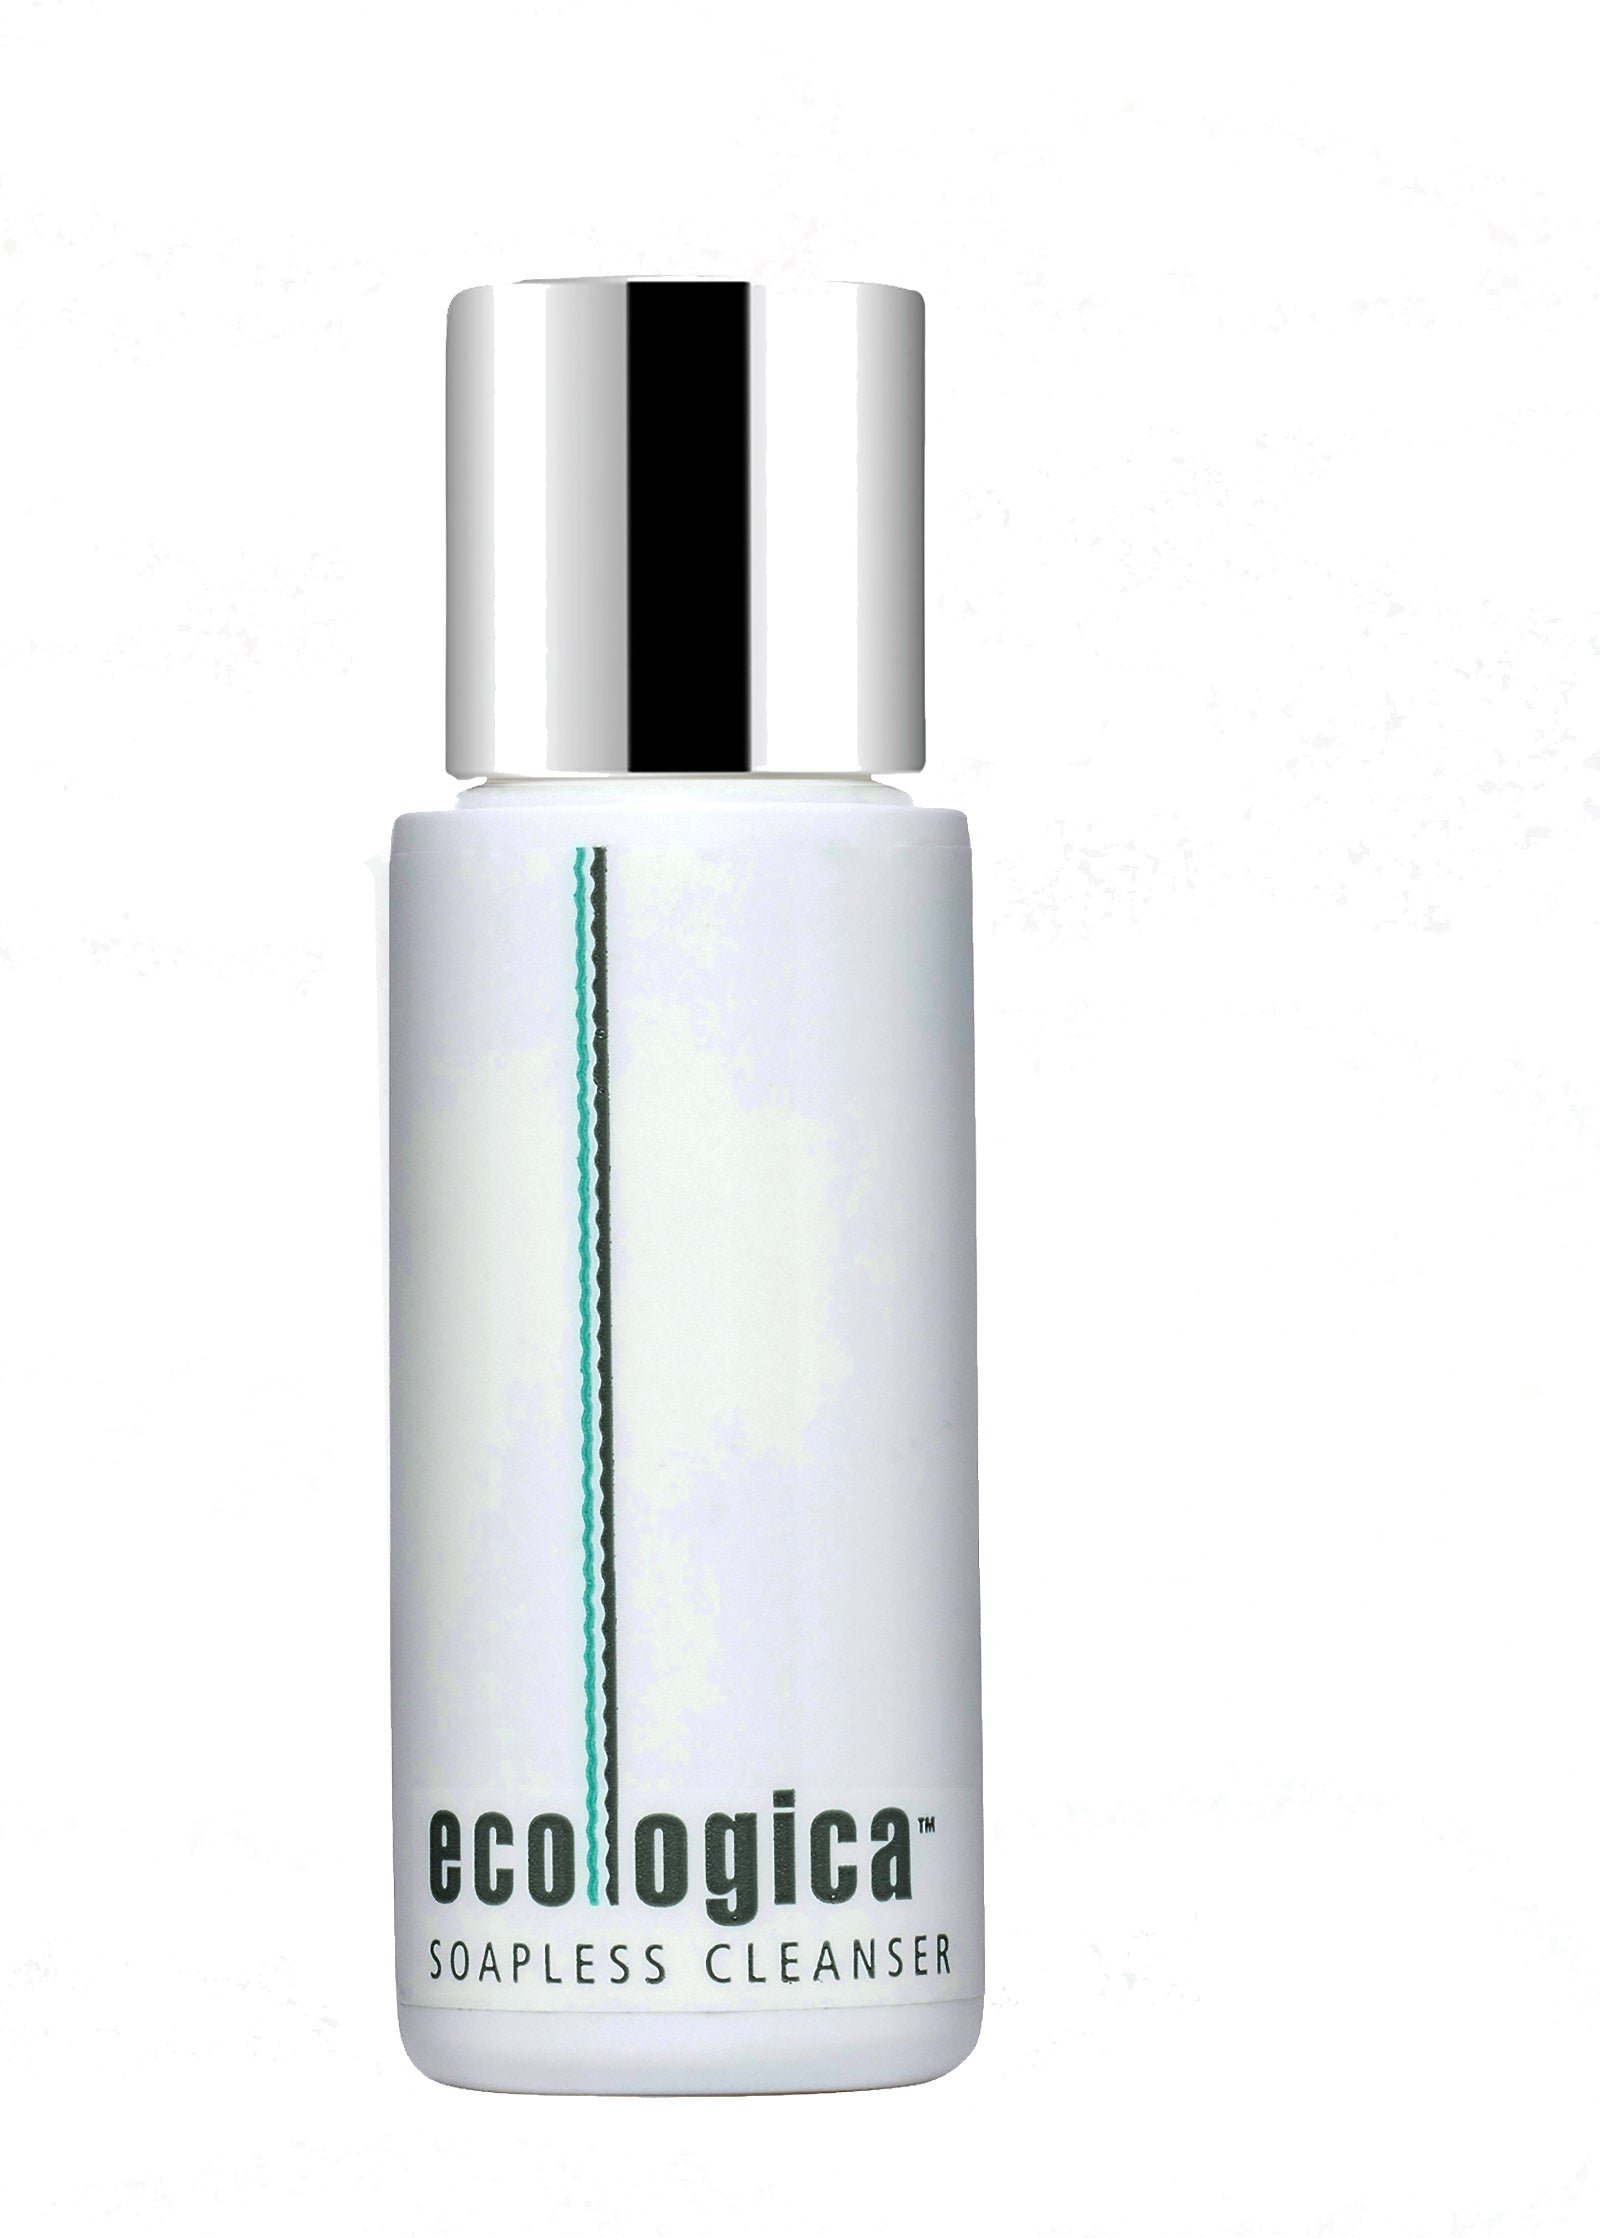 Ecologica Soapless Cleanser 2oz. travel